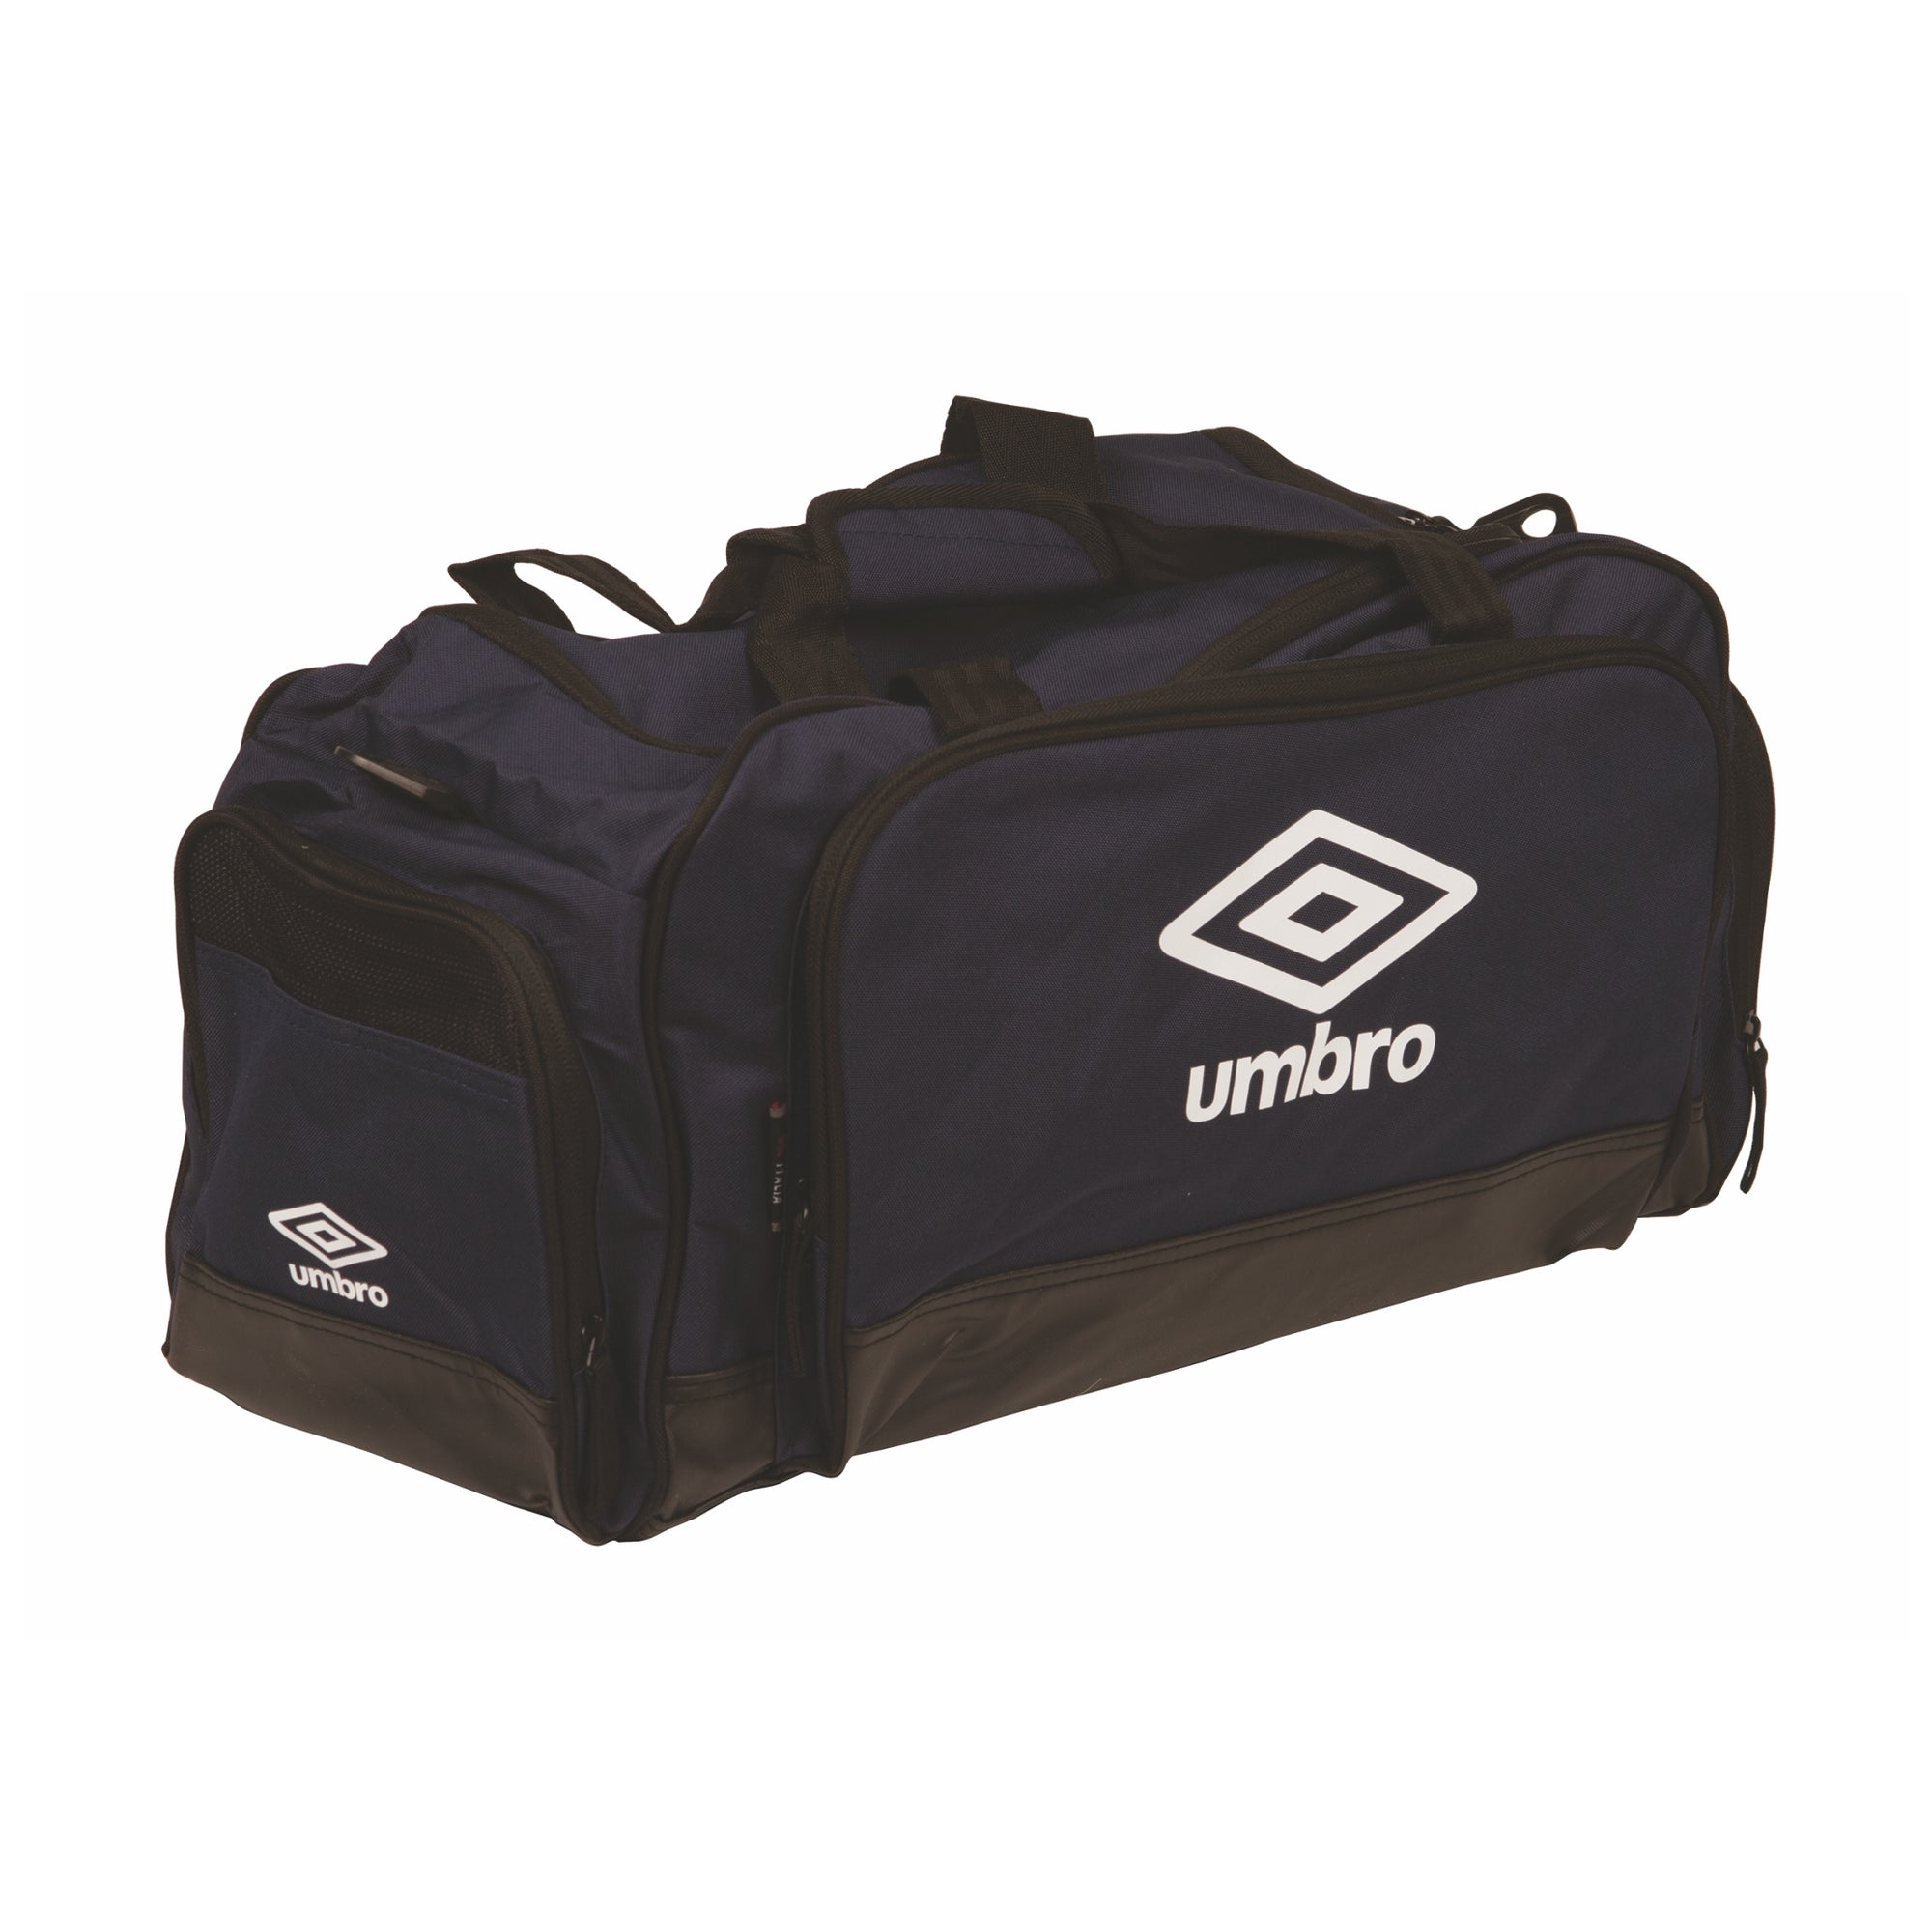 Umbro Small Holdall - Dark Navy/White